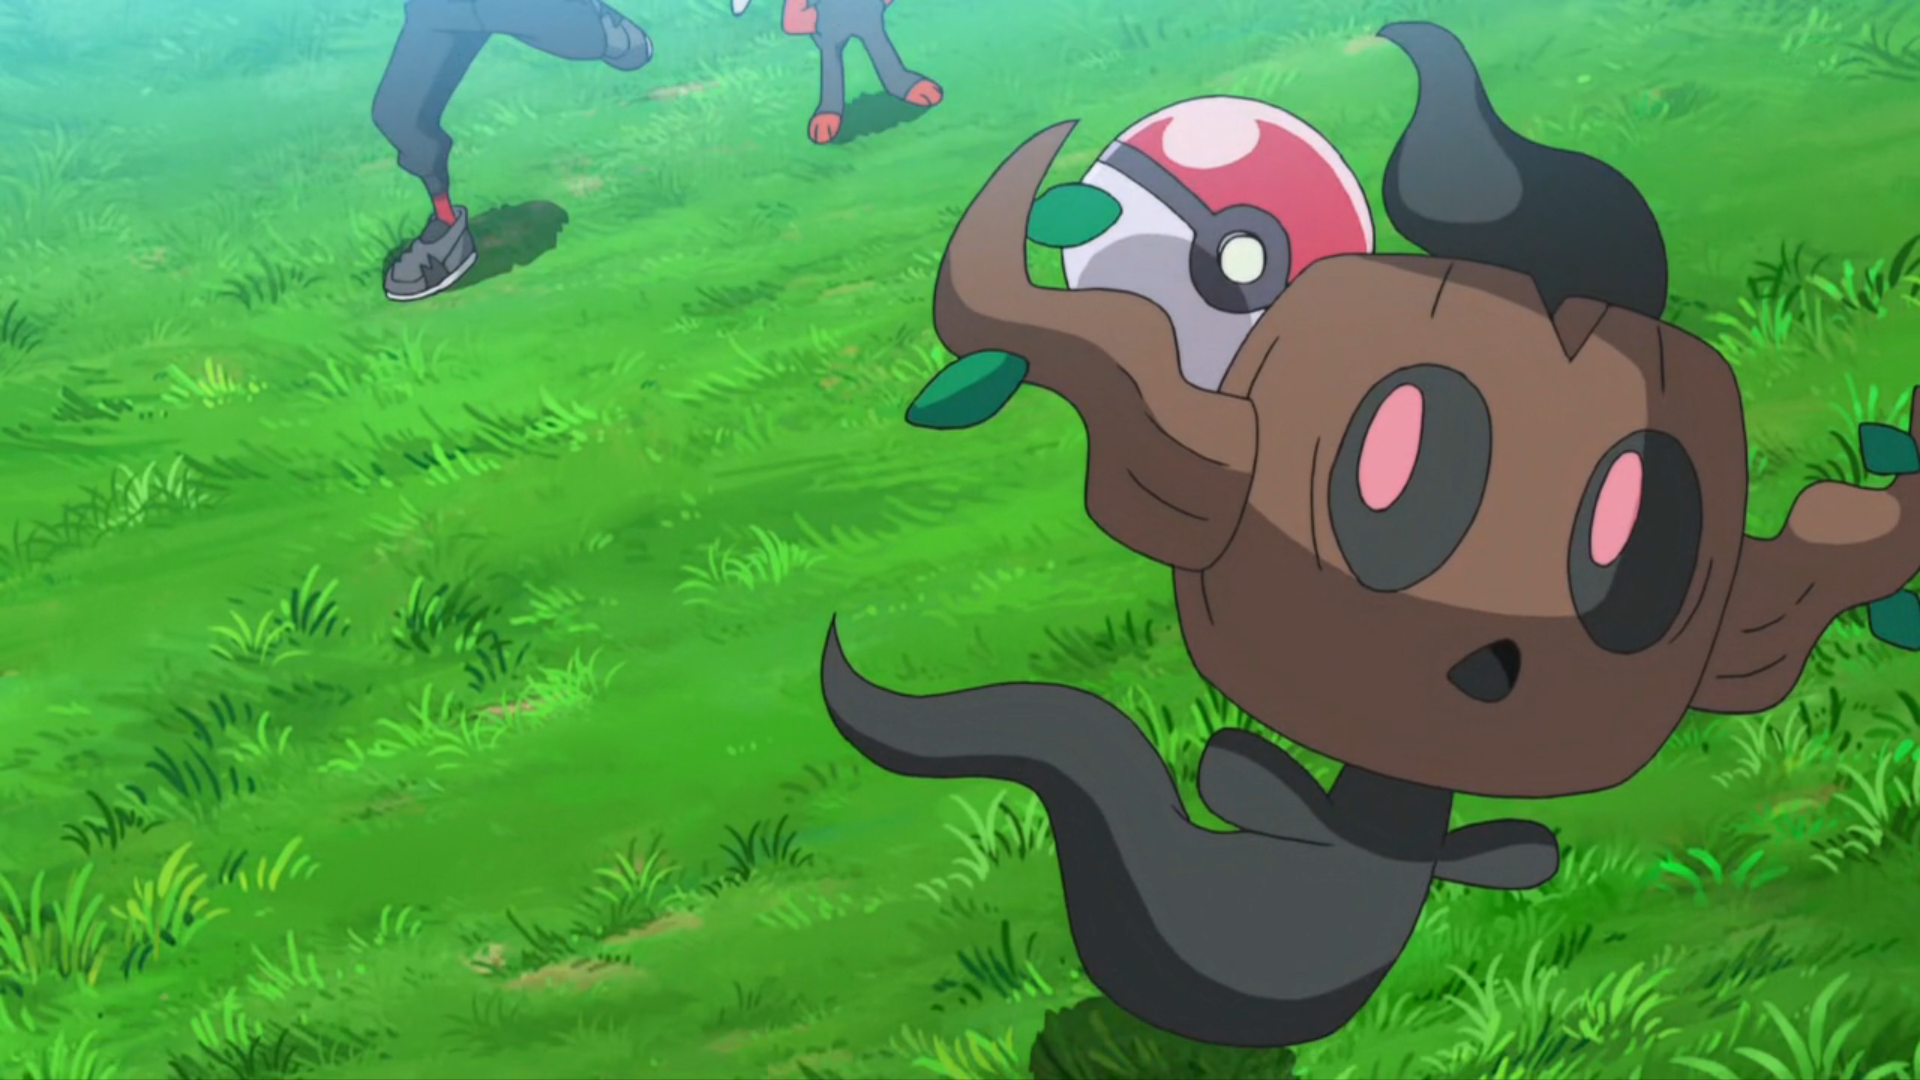 Goh Phantump